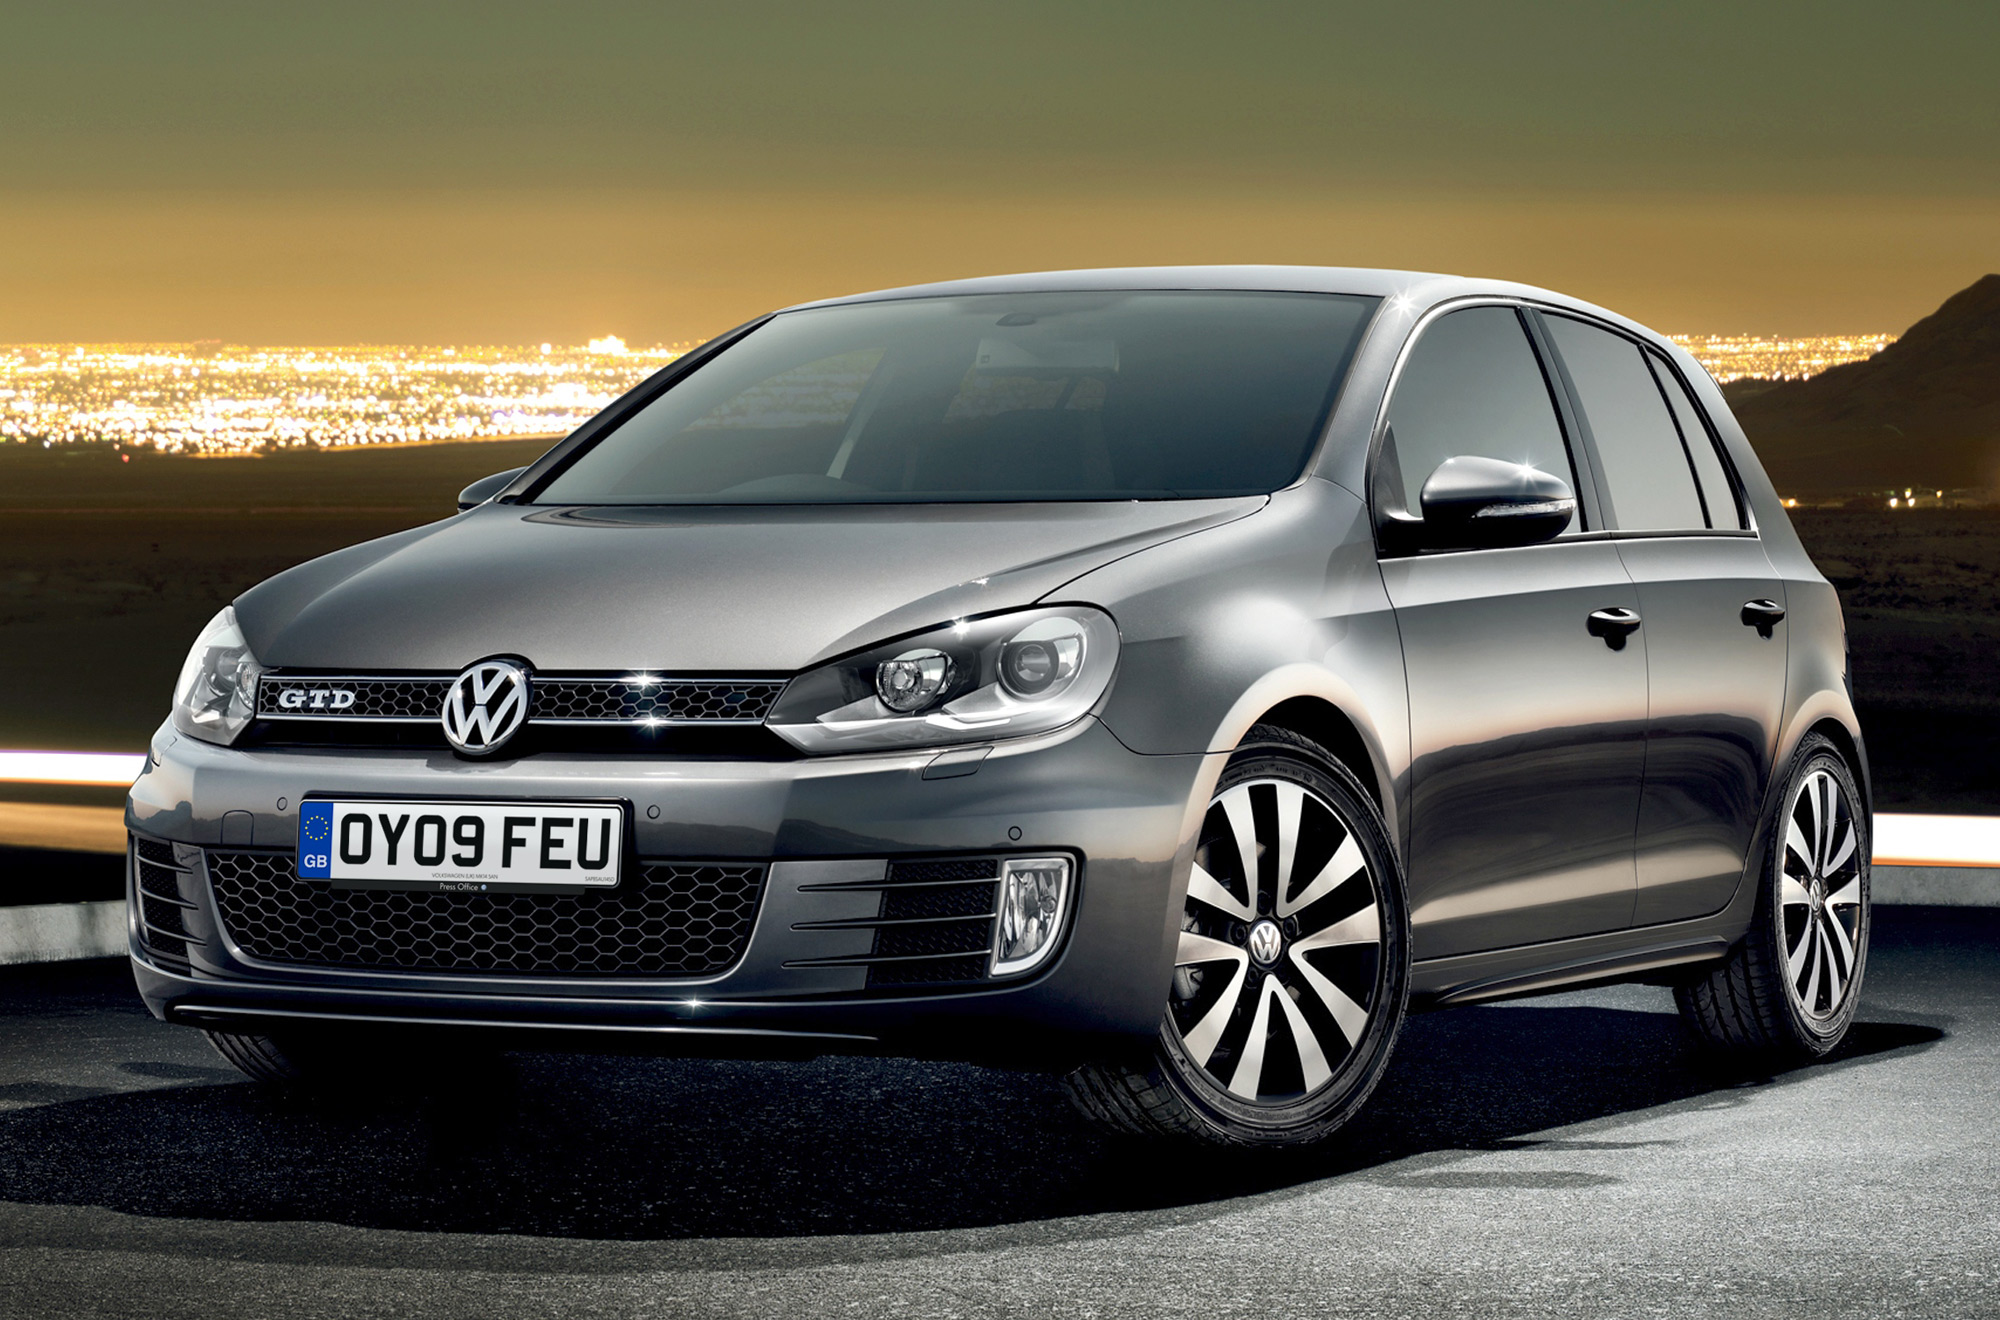 volkswagen uk announces golf gtd pricing. Black Bedroom Furniture Sets. Home Design Ideas